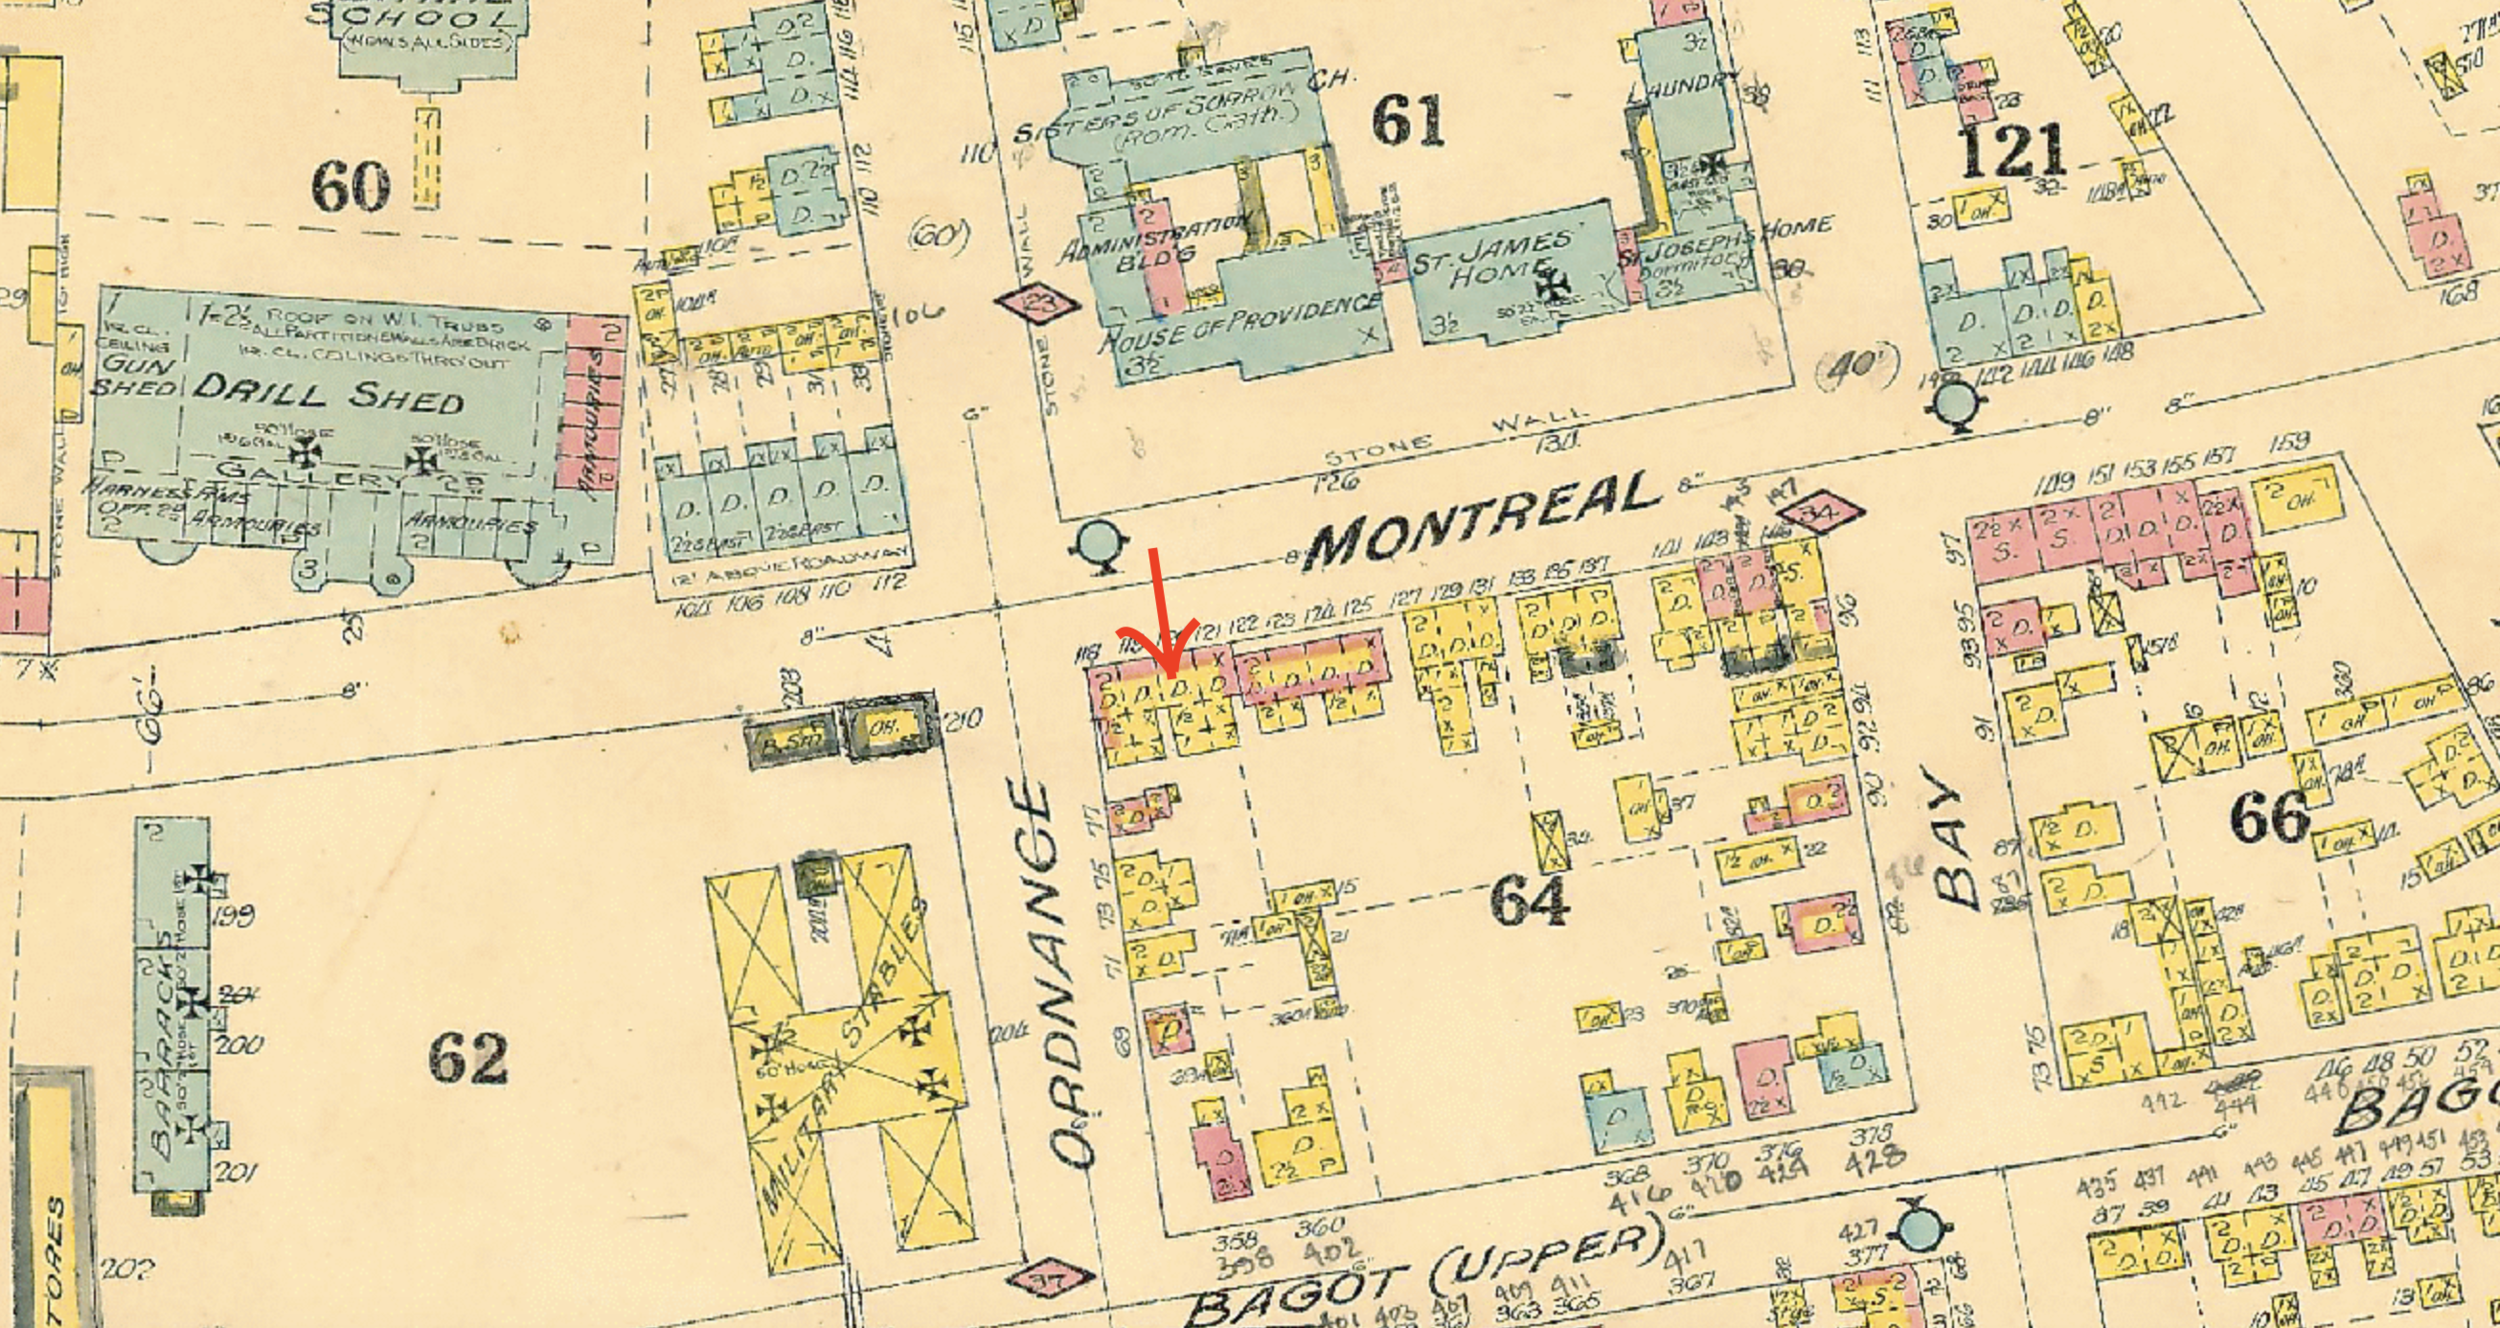 Fire INsurance map of 1908